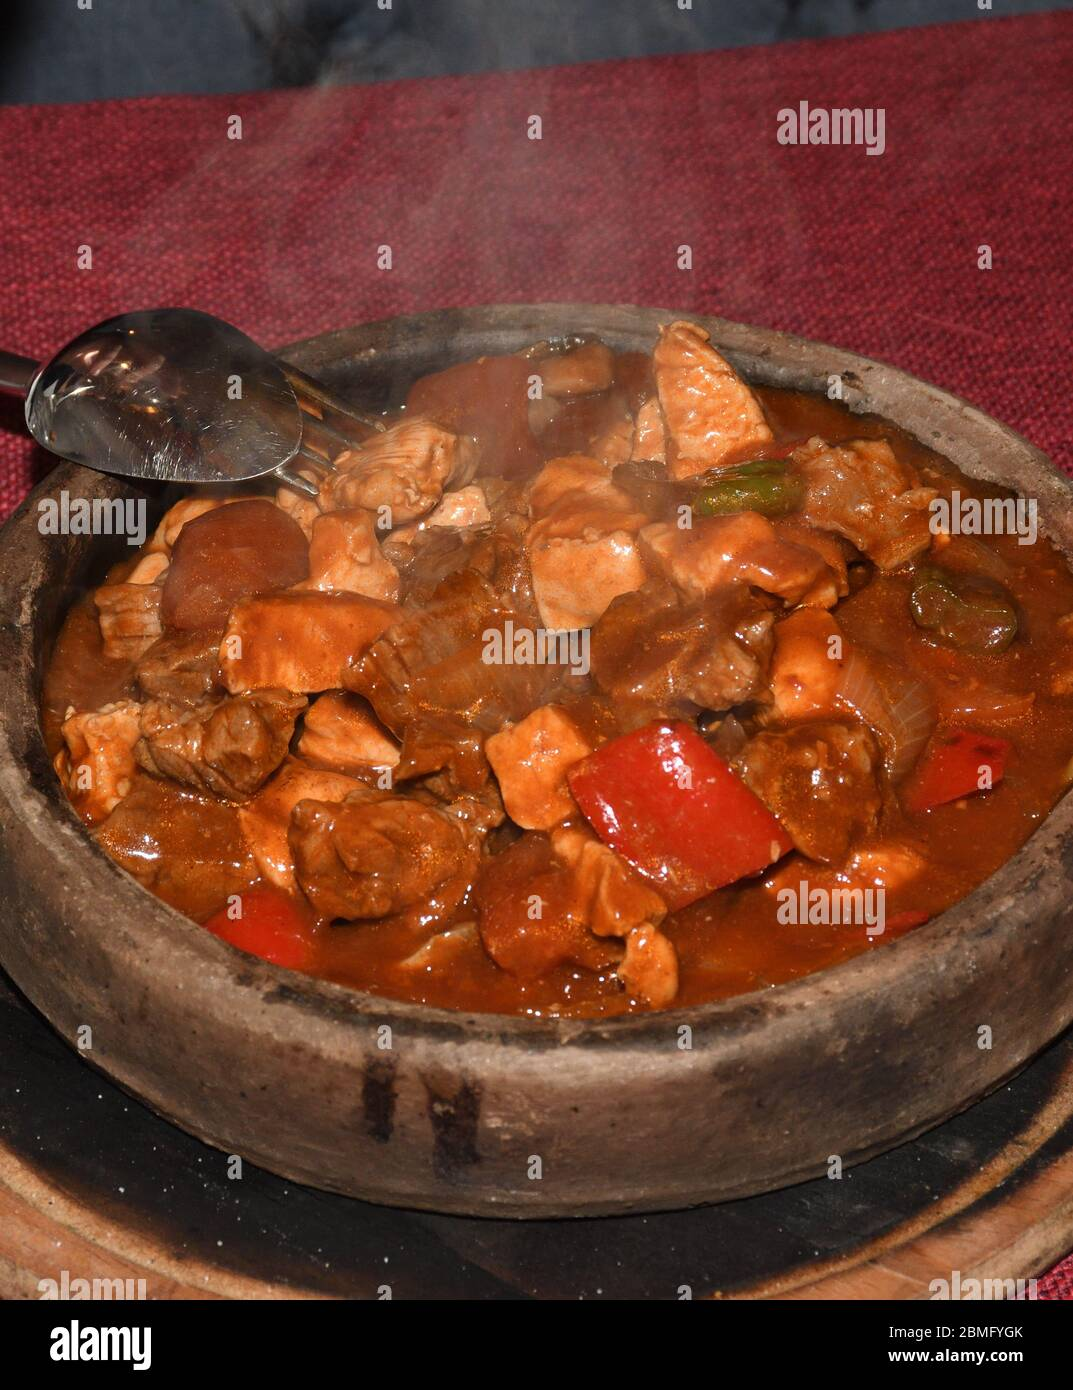 Home Cooked Lamb And Beef Or Pork Stew Served In A Traditional Restaurant In Wooden Bowl View Closeup Tomato Sauce Red Peppers Potato Carrots Stock Photo Alamy